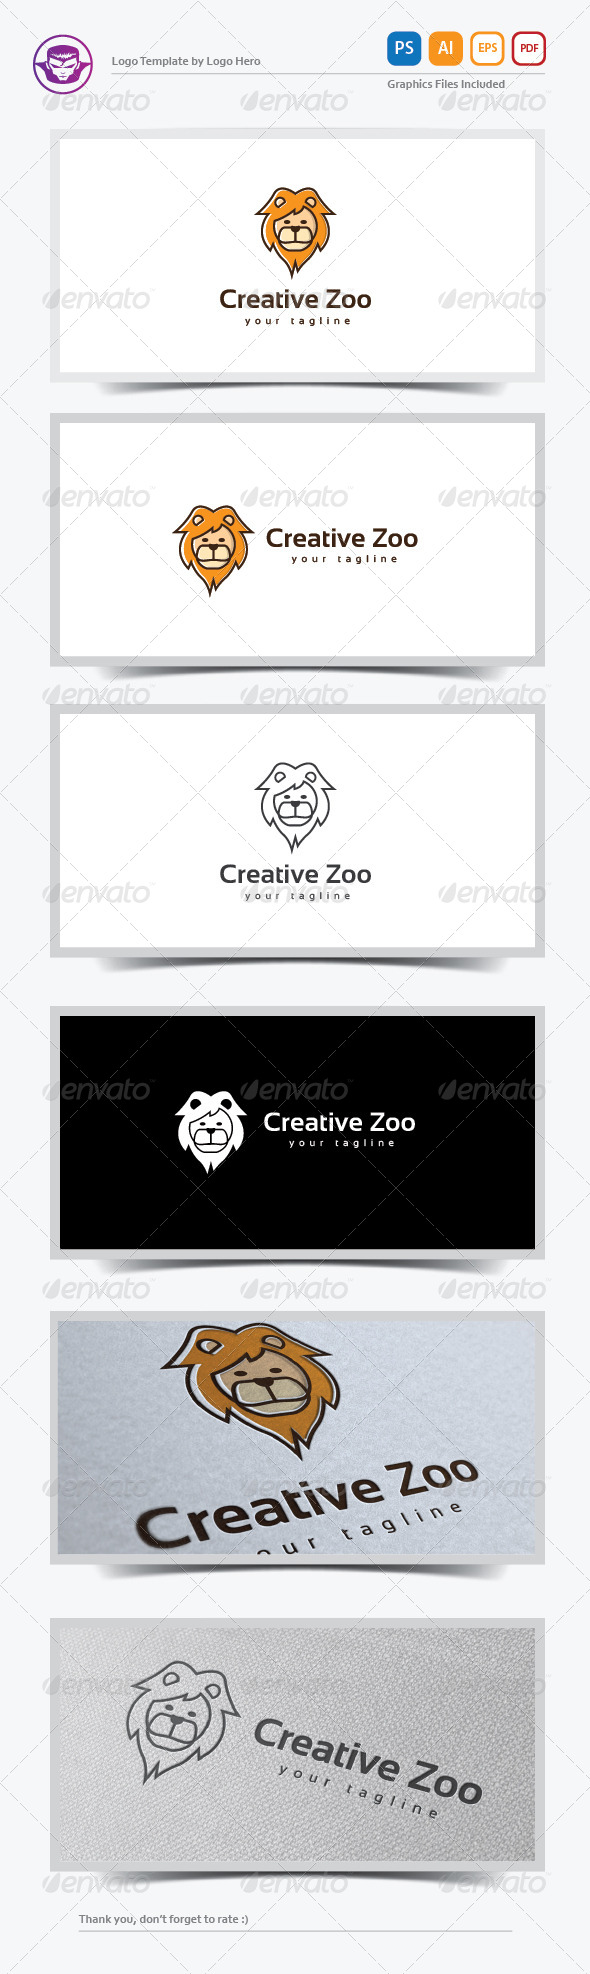 GraphicRiver Creative Zoo Logo Template 8183197